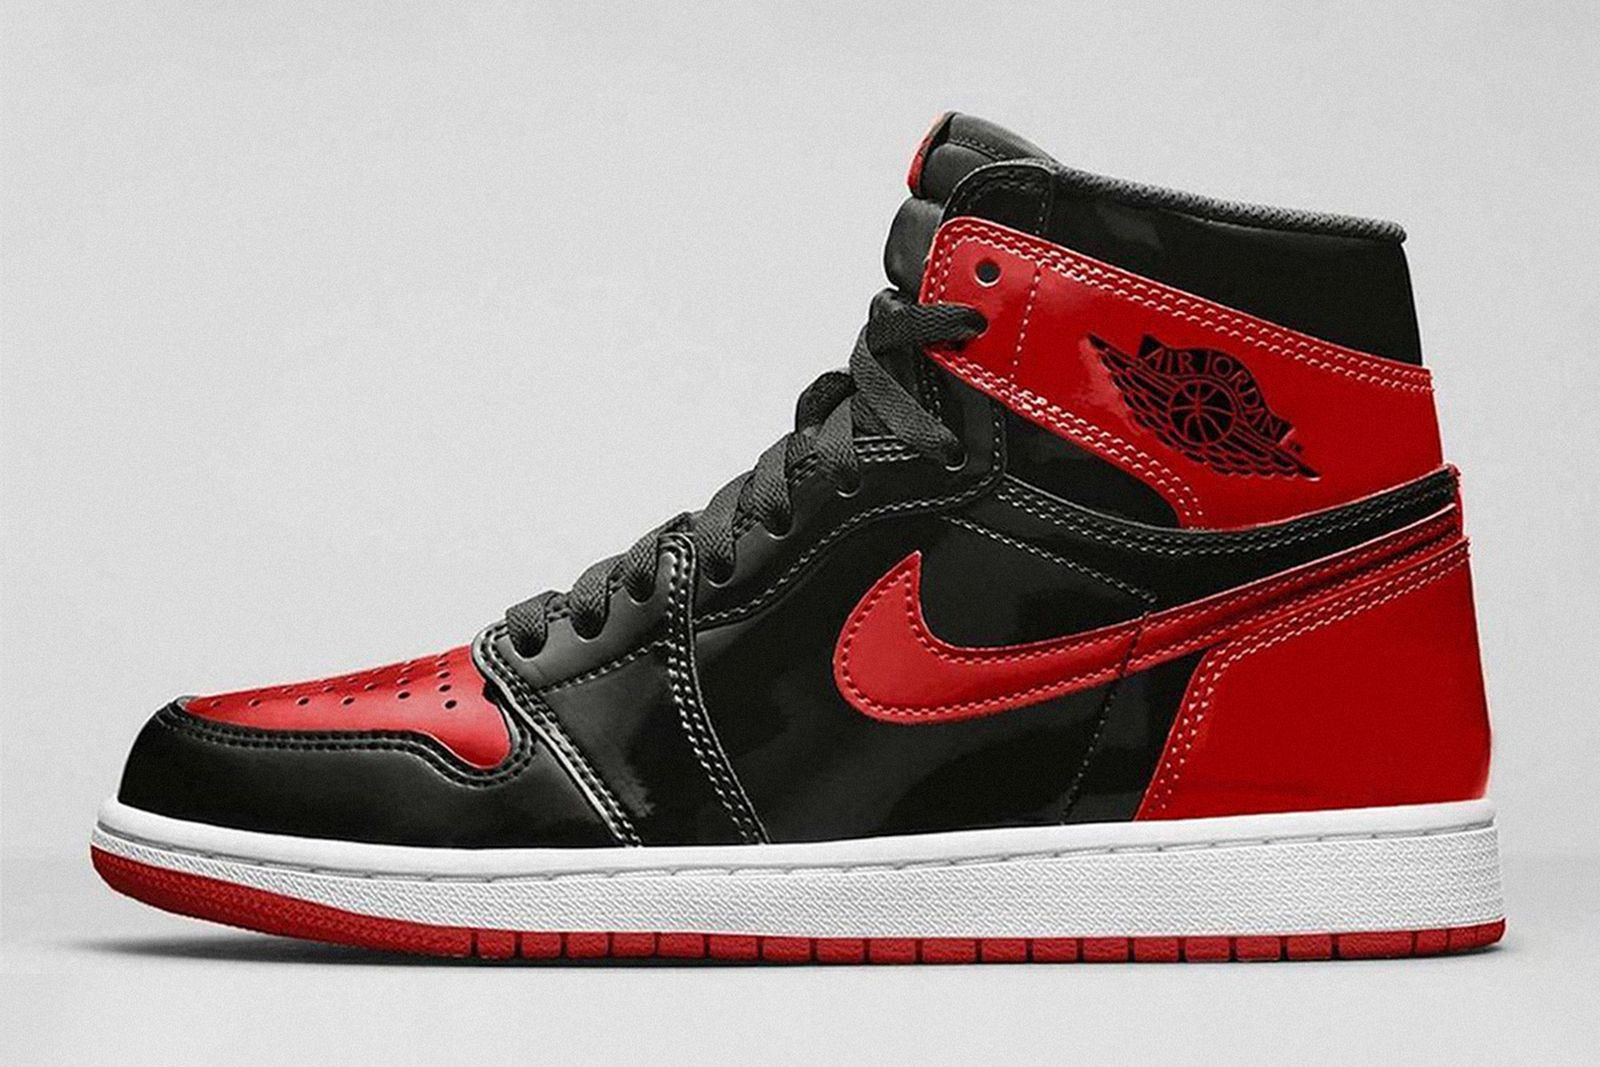 lead-air-jordan-1-retro-high-og-banned-patent-leather-release-date-2021-main